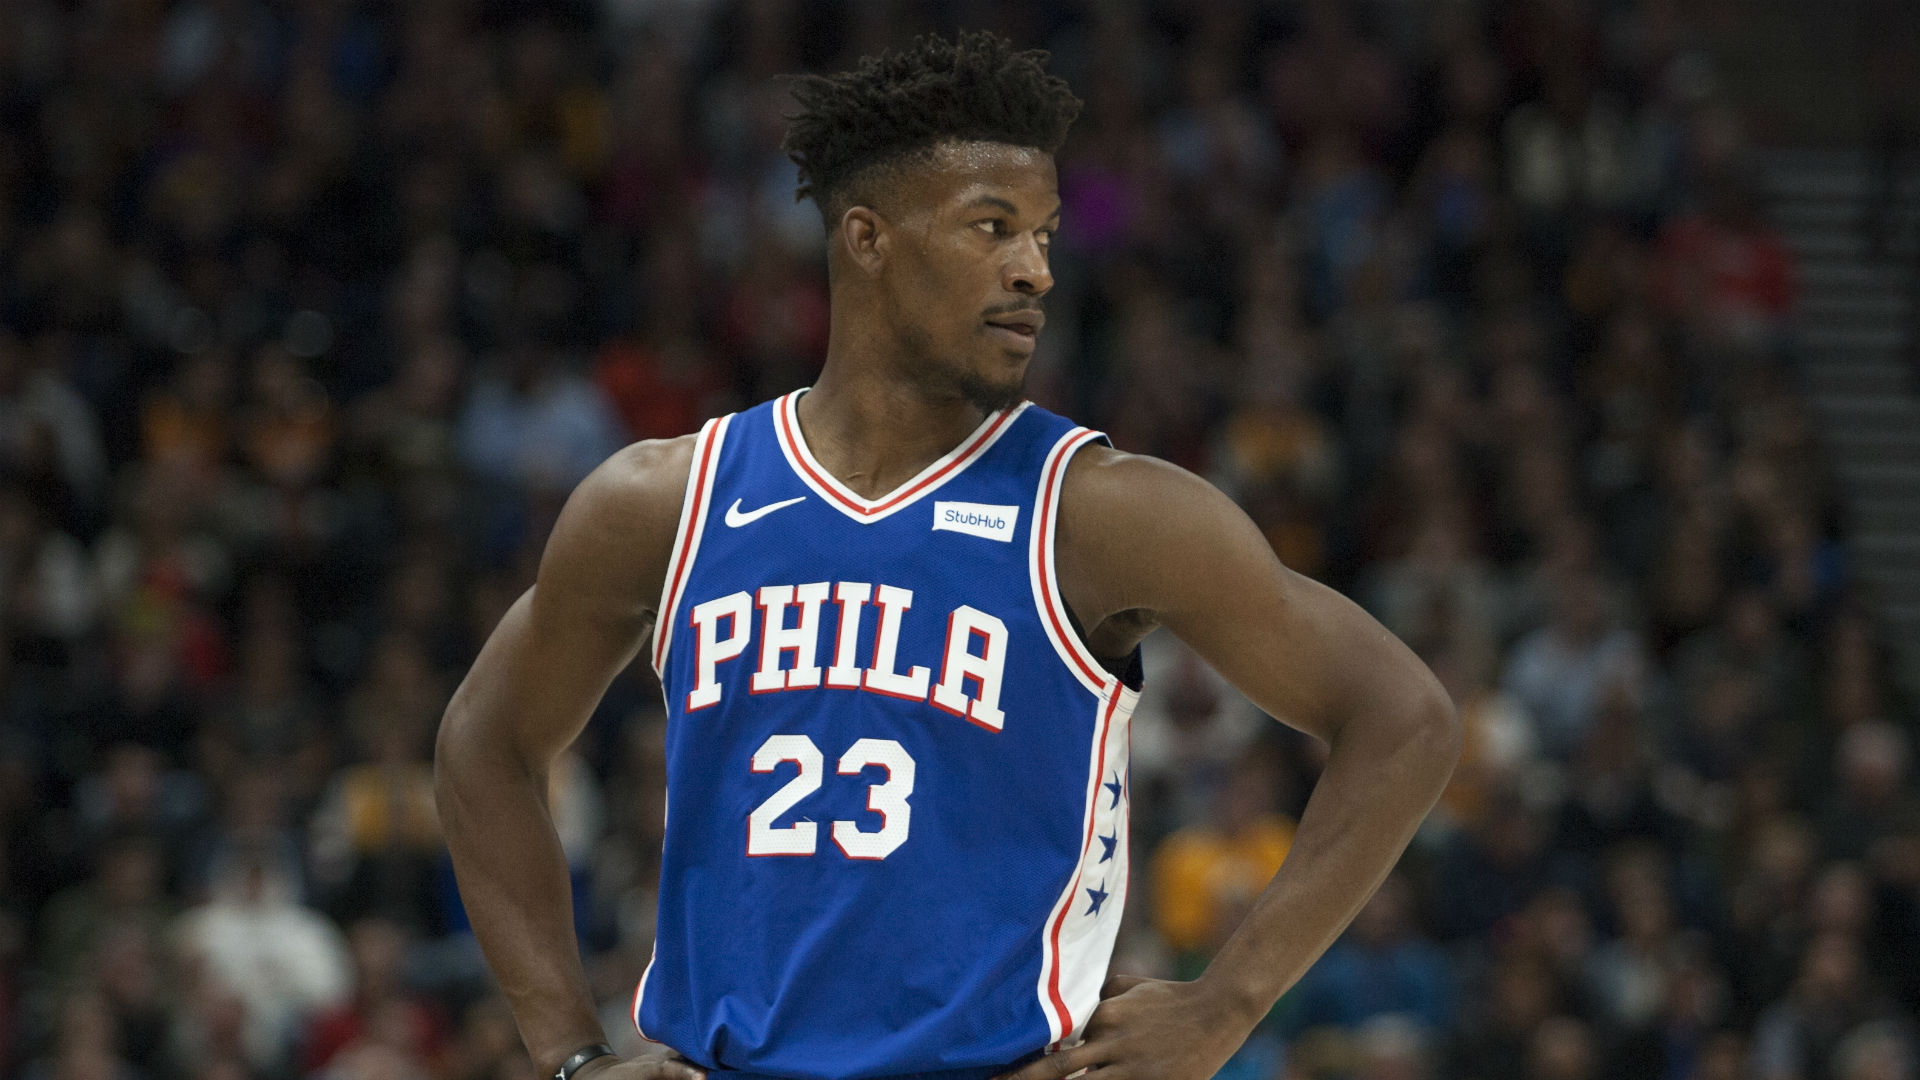 Jimmy Butler has called out 76ers coach about team's offensive approach